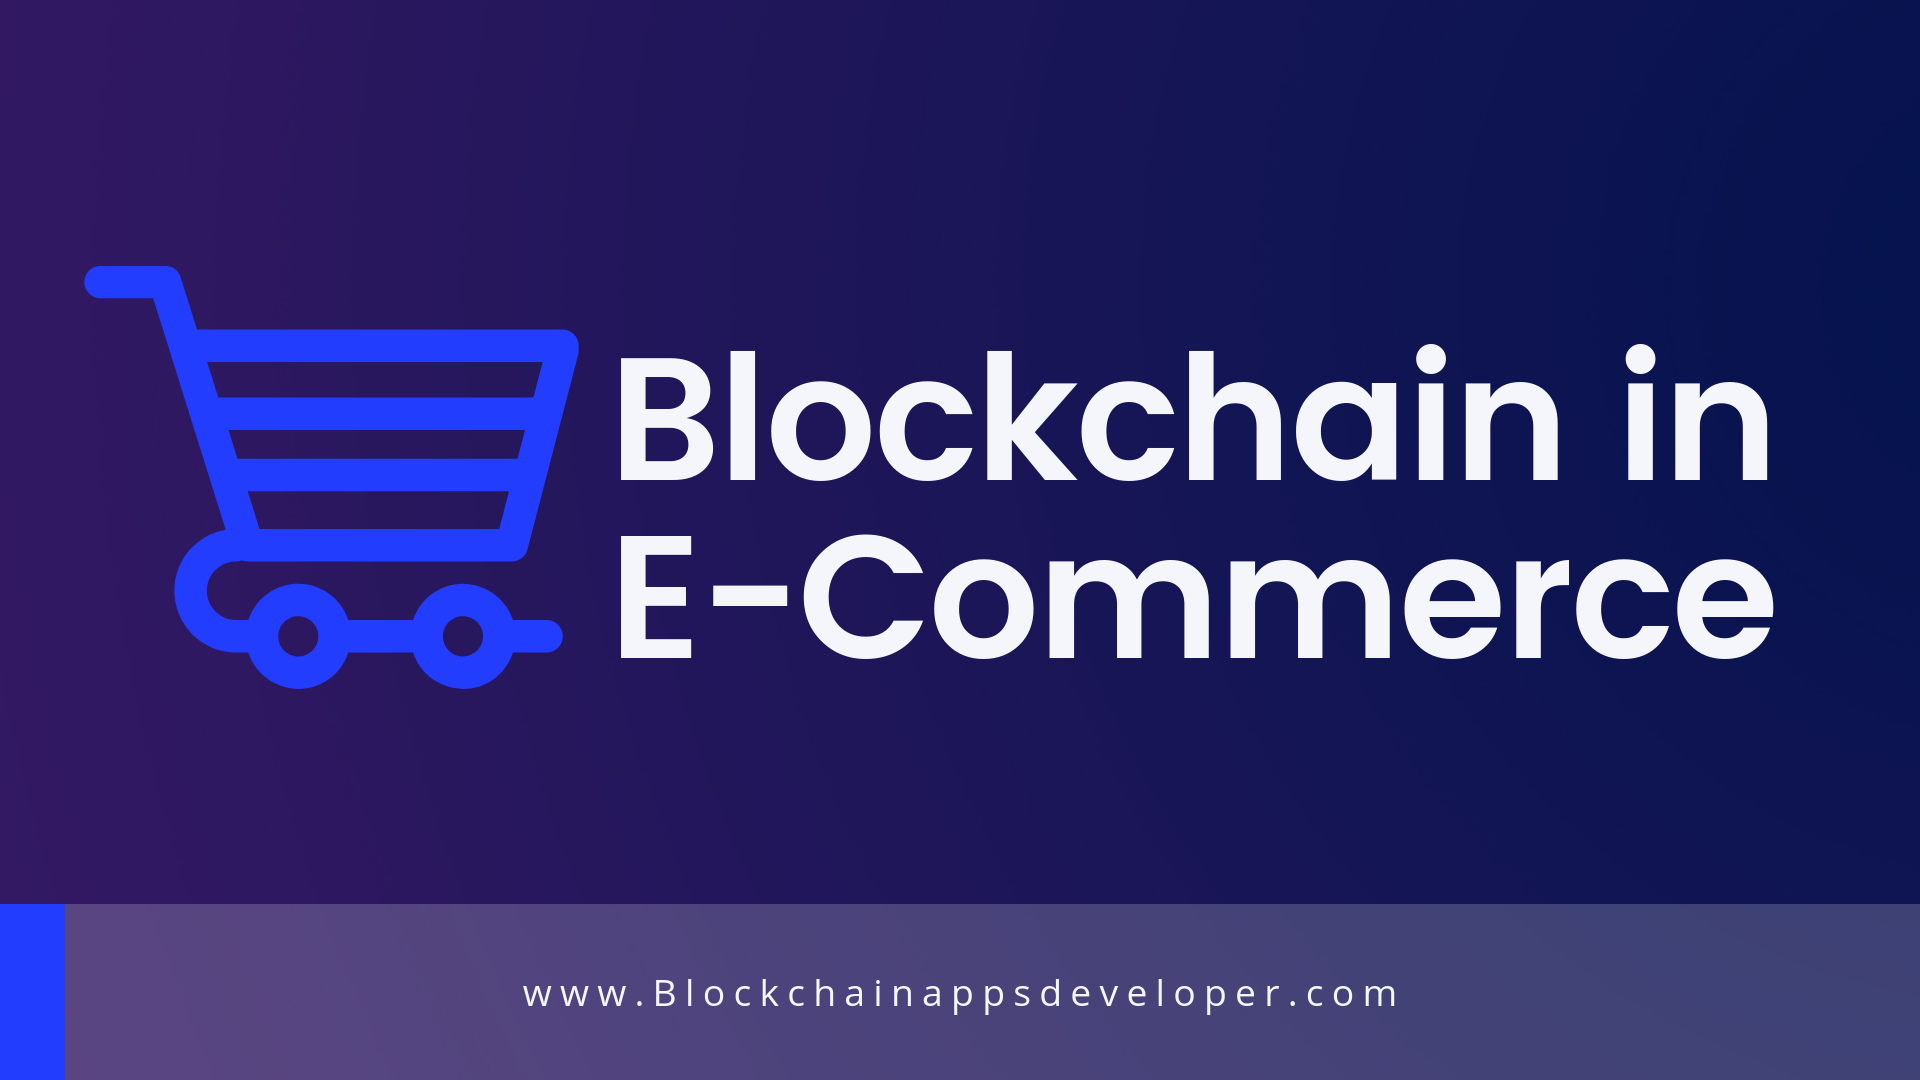 How Blockchain Improves Ecommerce Industry?